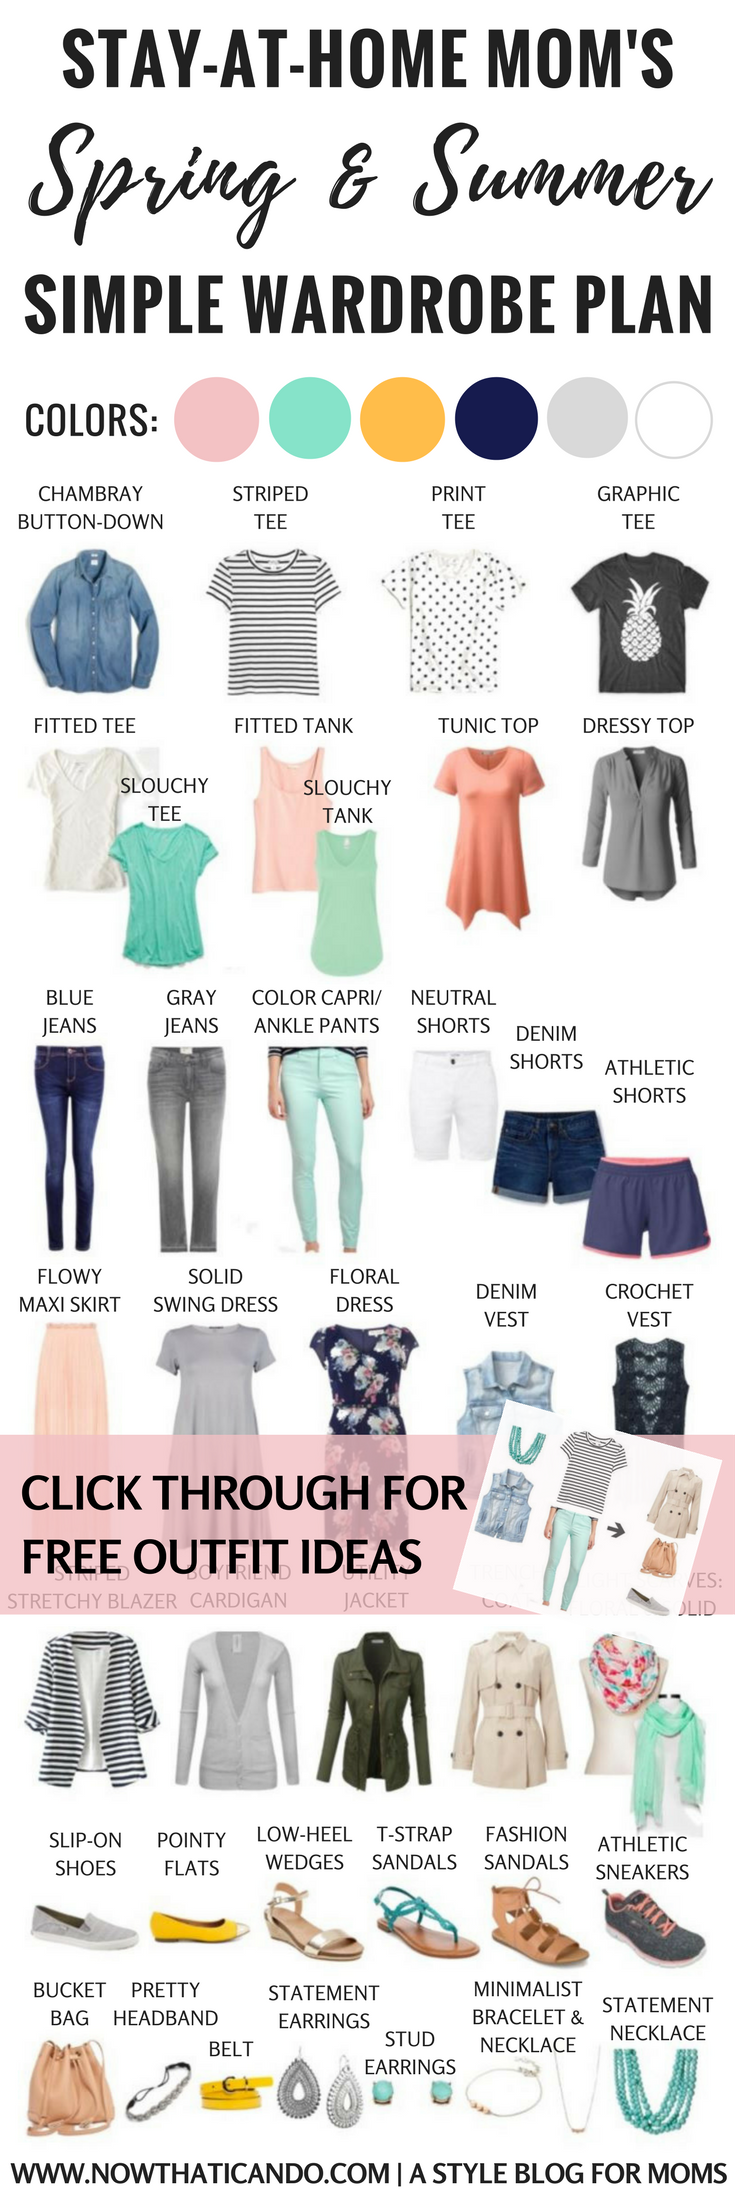 Basic Spring/Summer Capsule Wardrobe (86+ Outfits) for Stay-at-Home ...